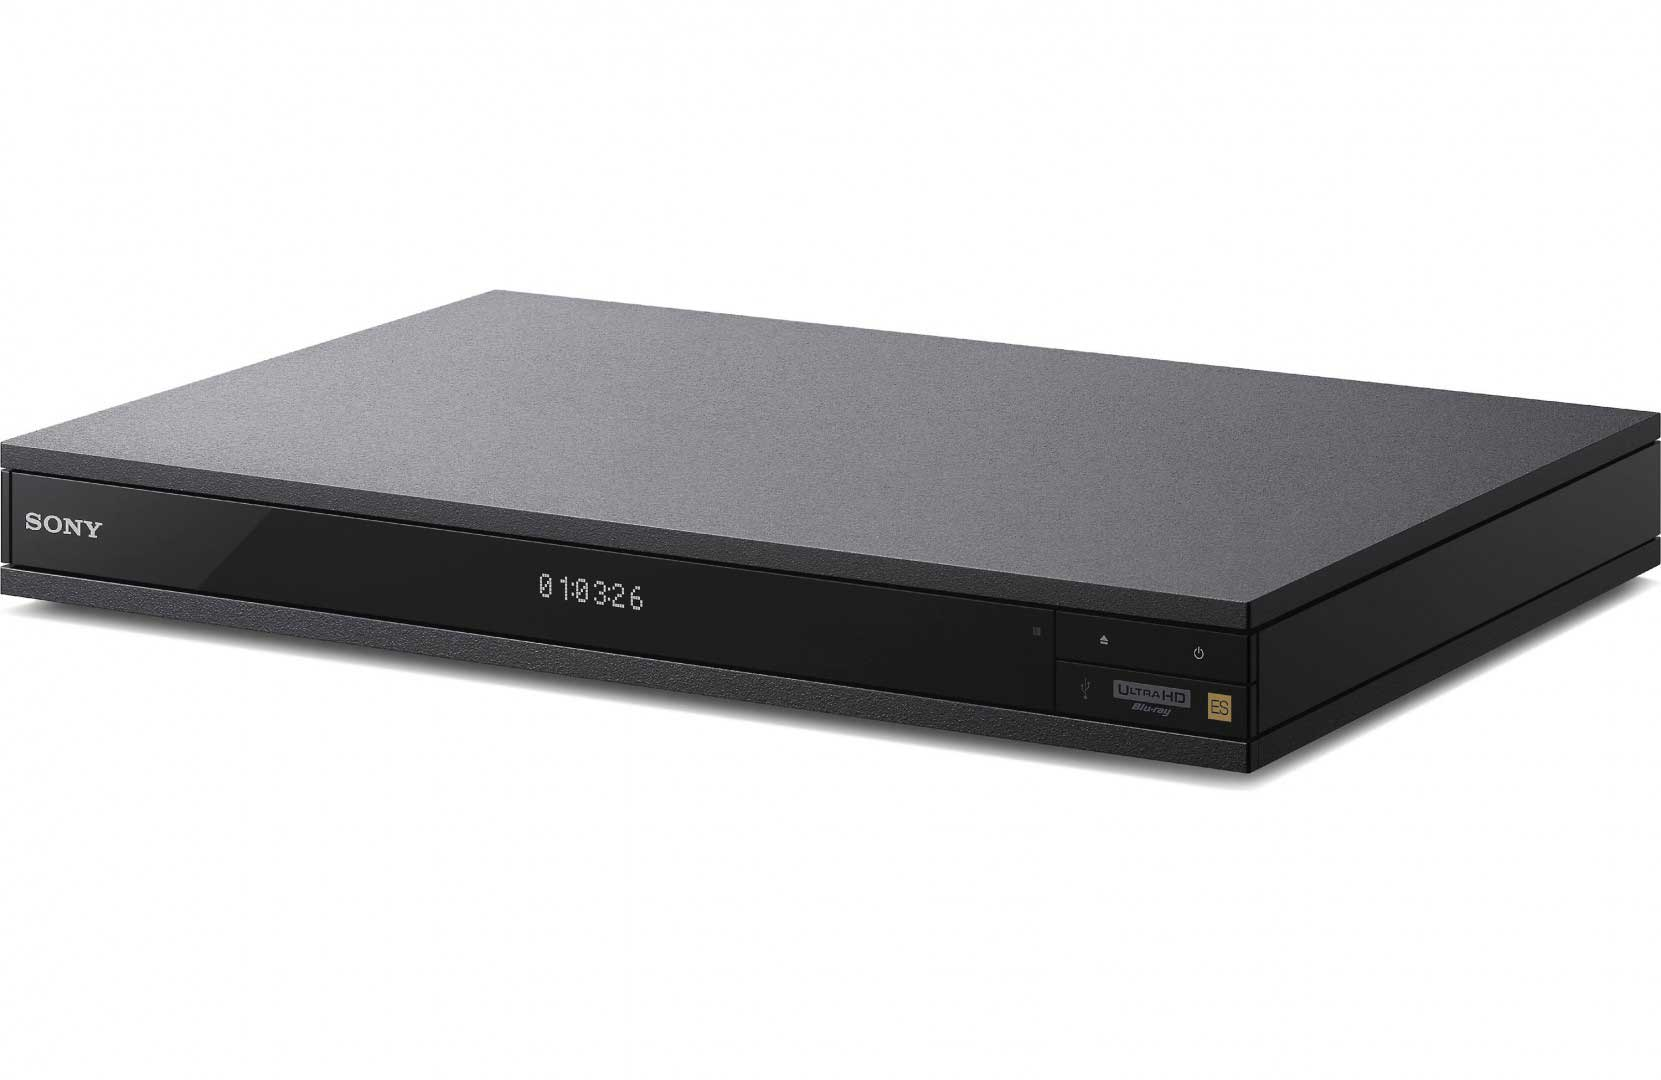 Sony UBP-X1000ES 4K Ultra HD Blu-ray Player